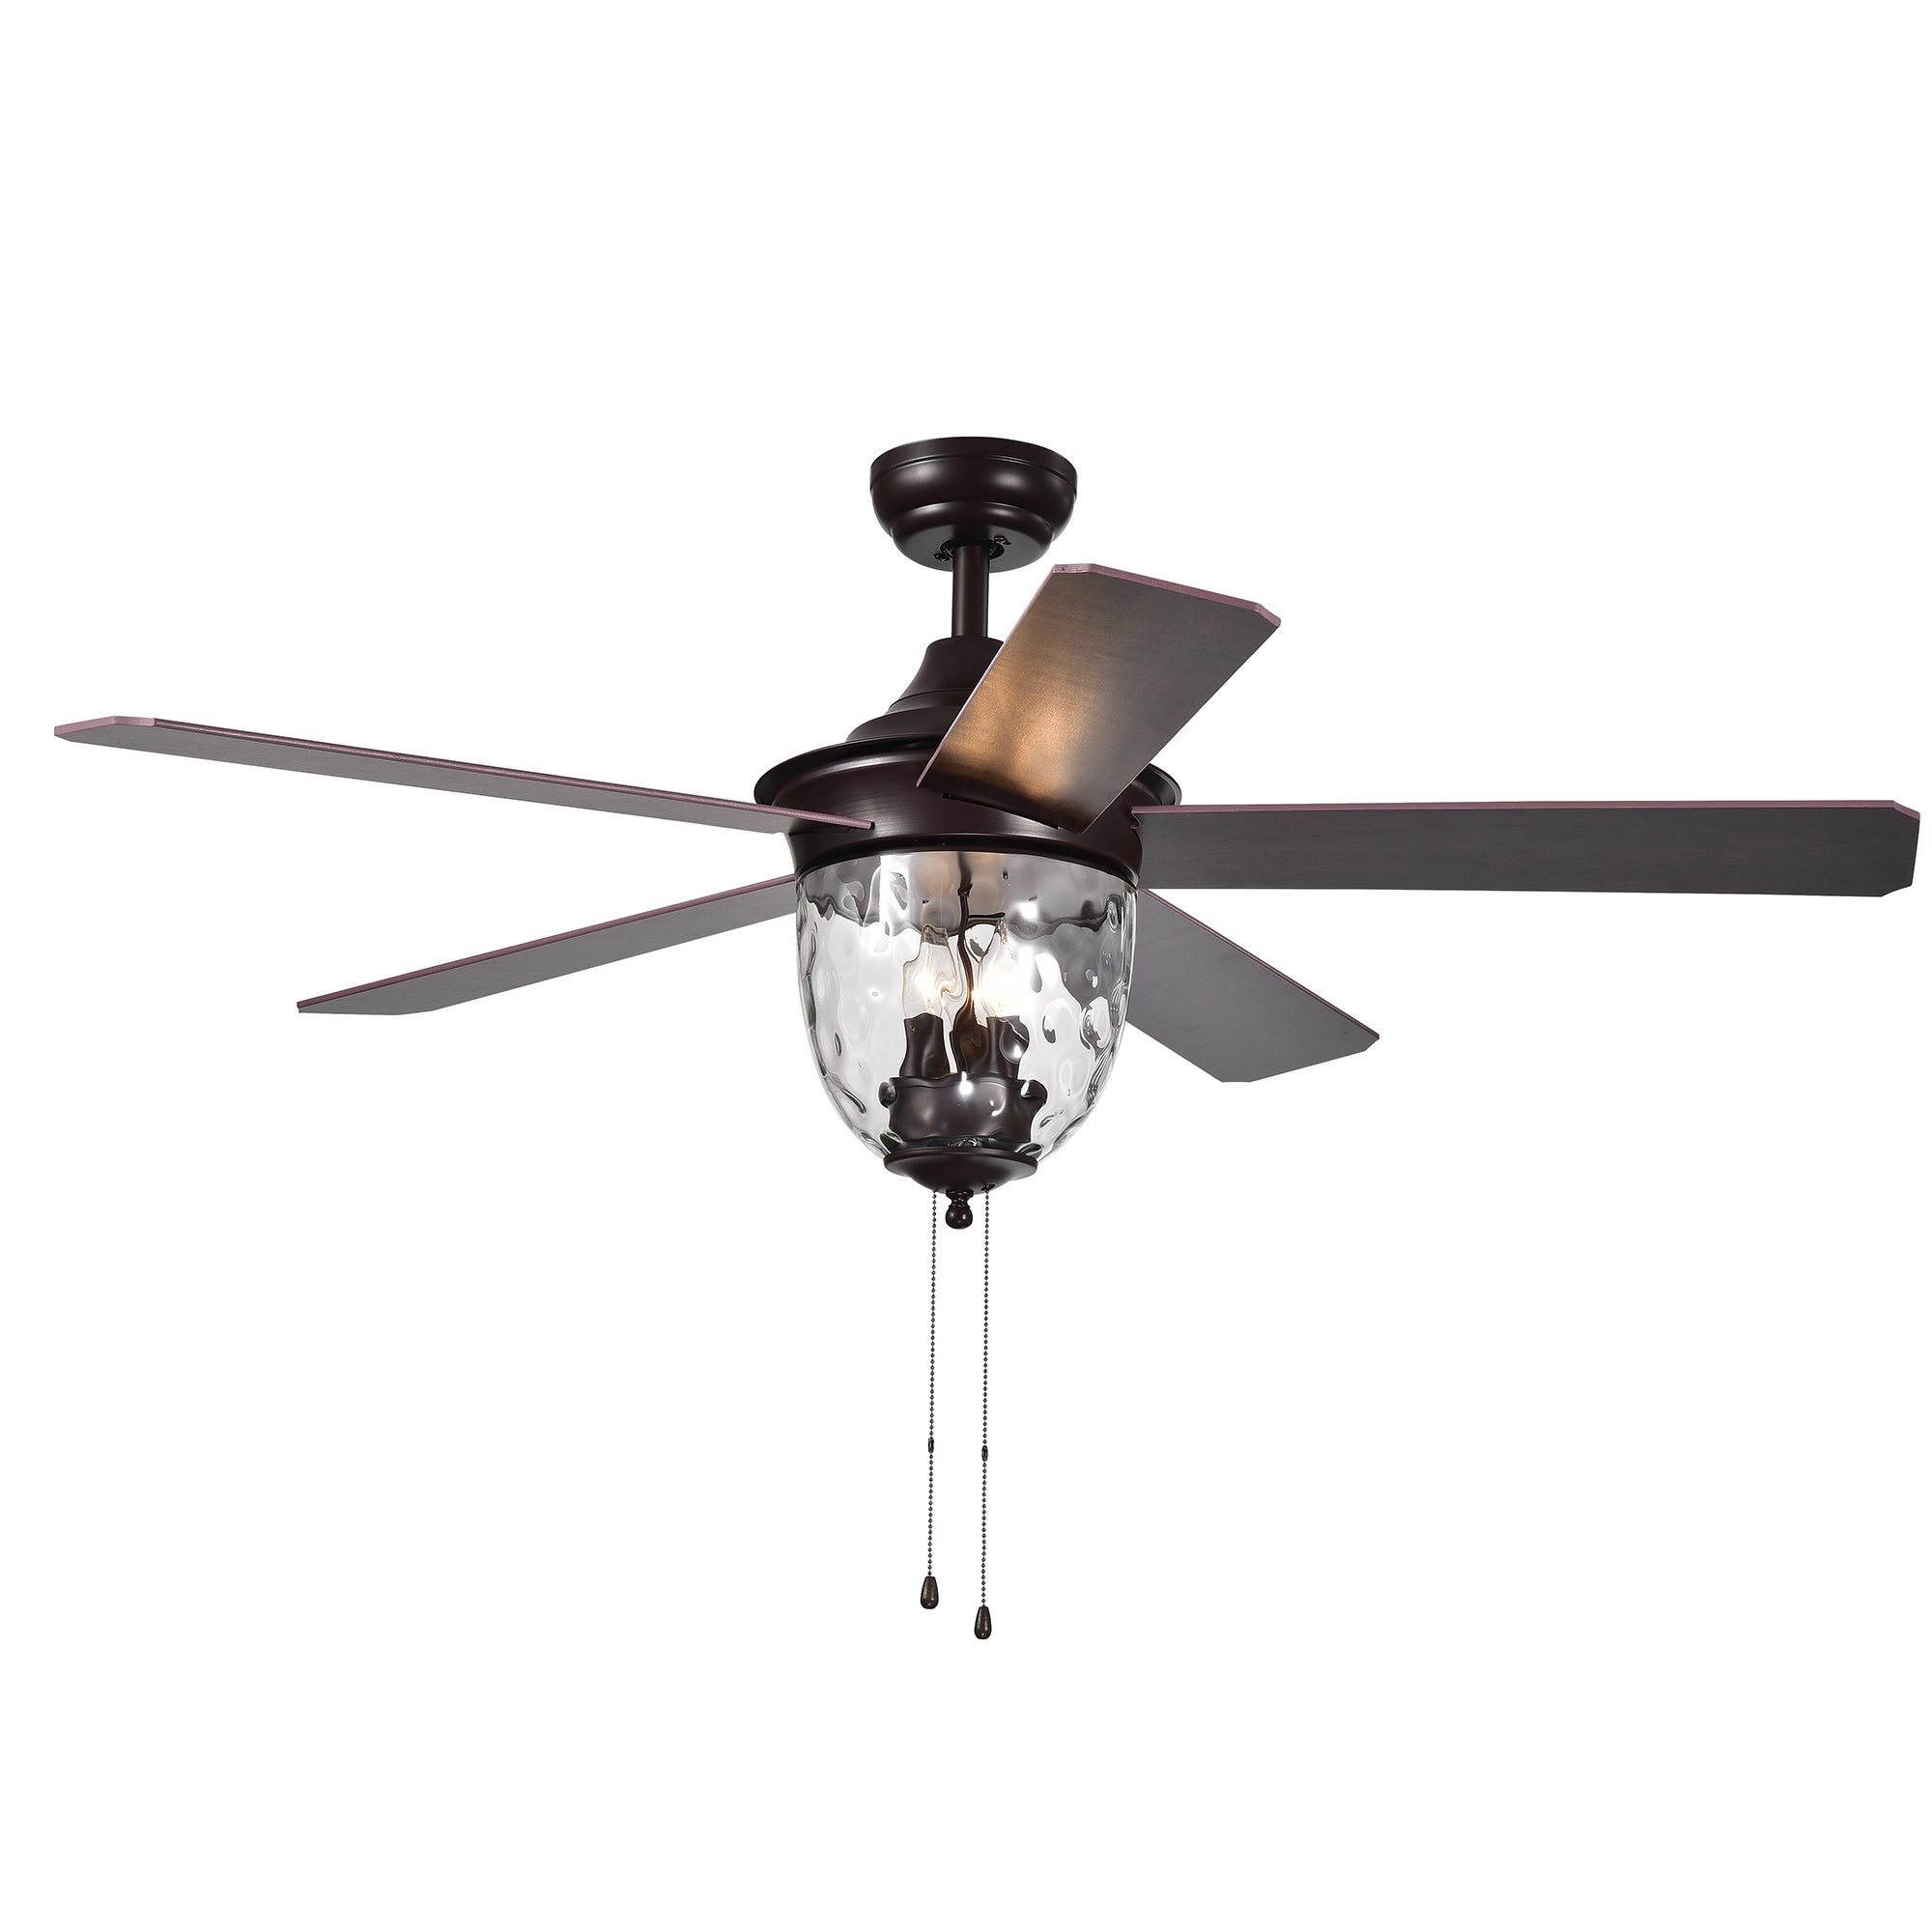 fans onlinecompliance house light regular decor ceiling for http douglas best idea hunter with fan your bulbs